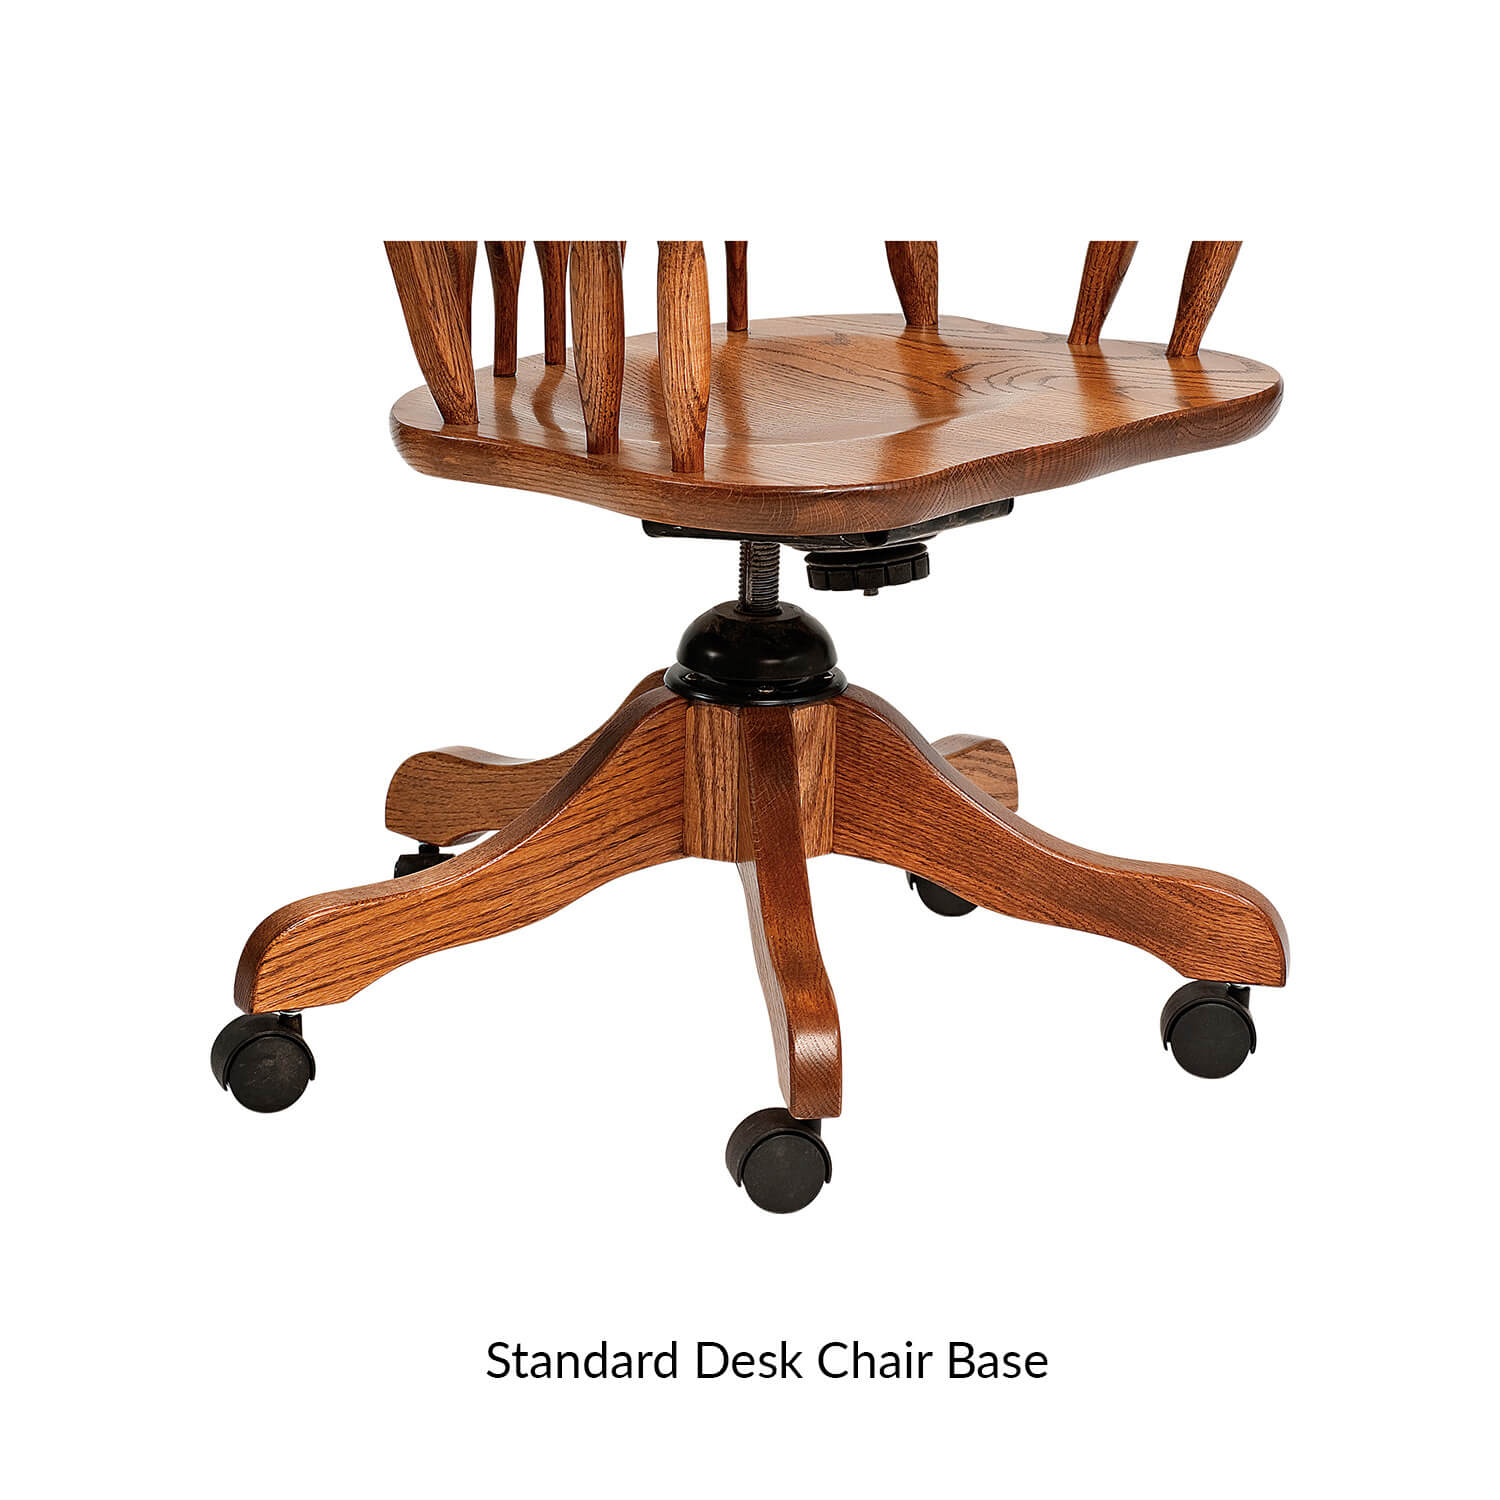 18.0-standard-desk-chair-base.jpg